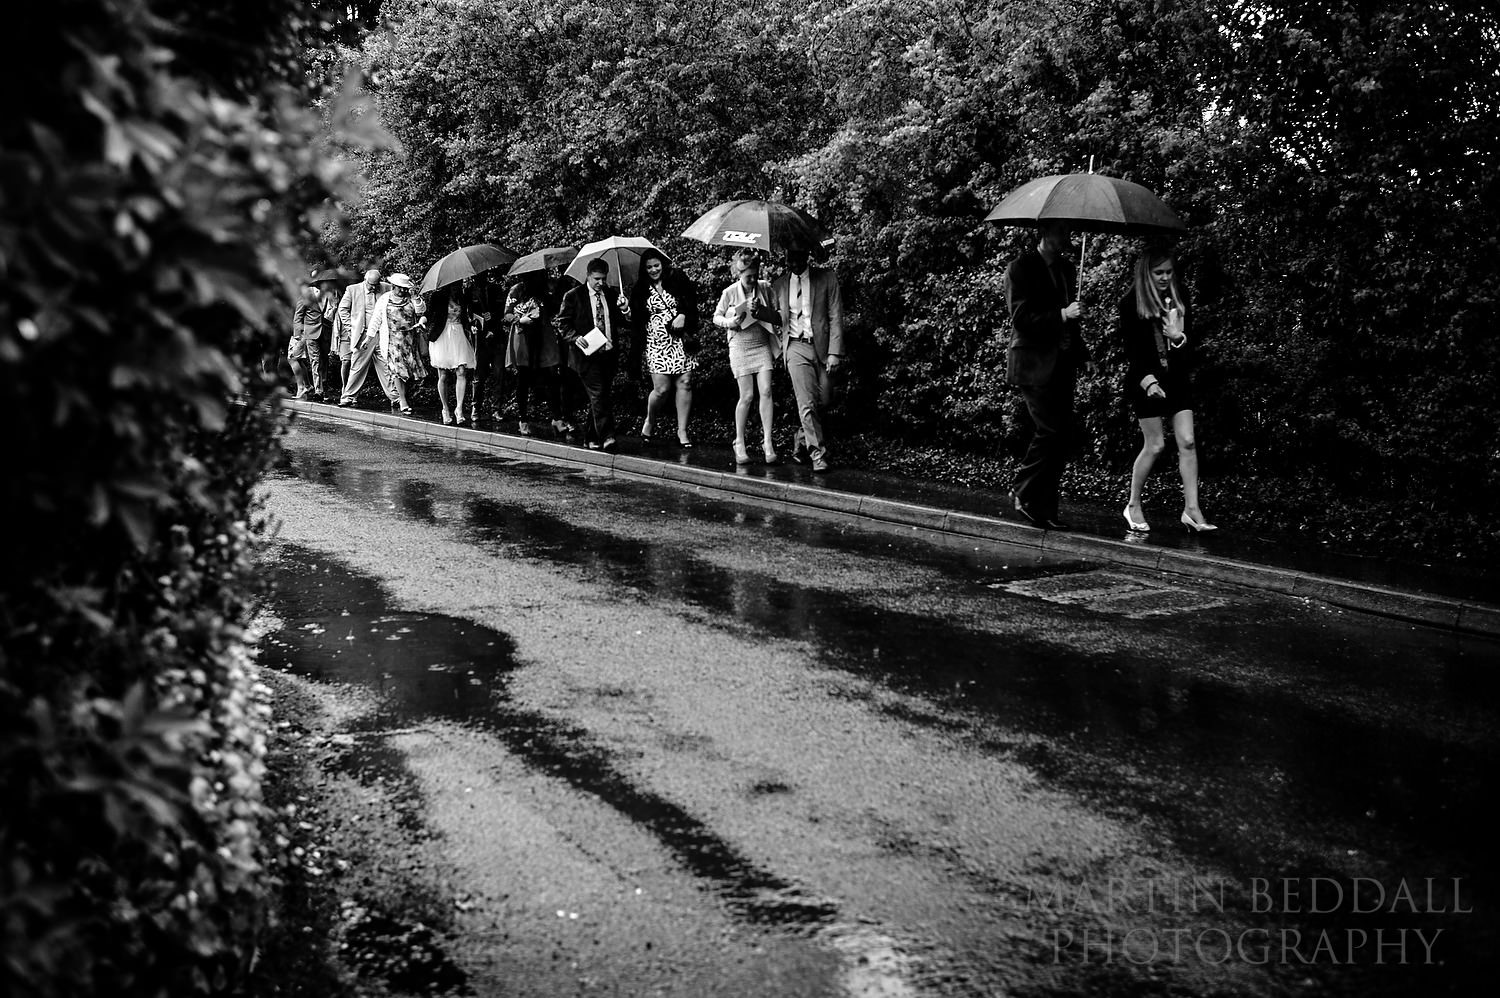 Guests walking in the rain